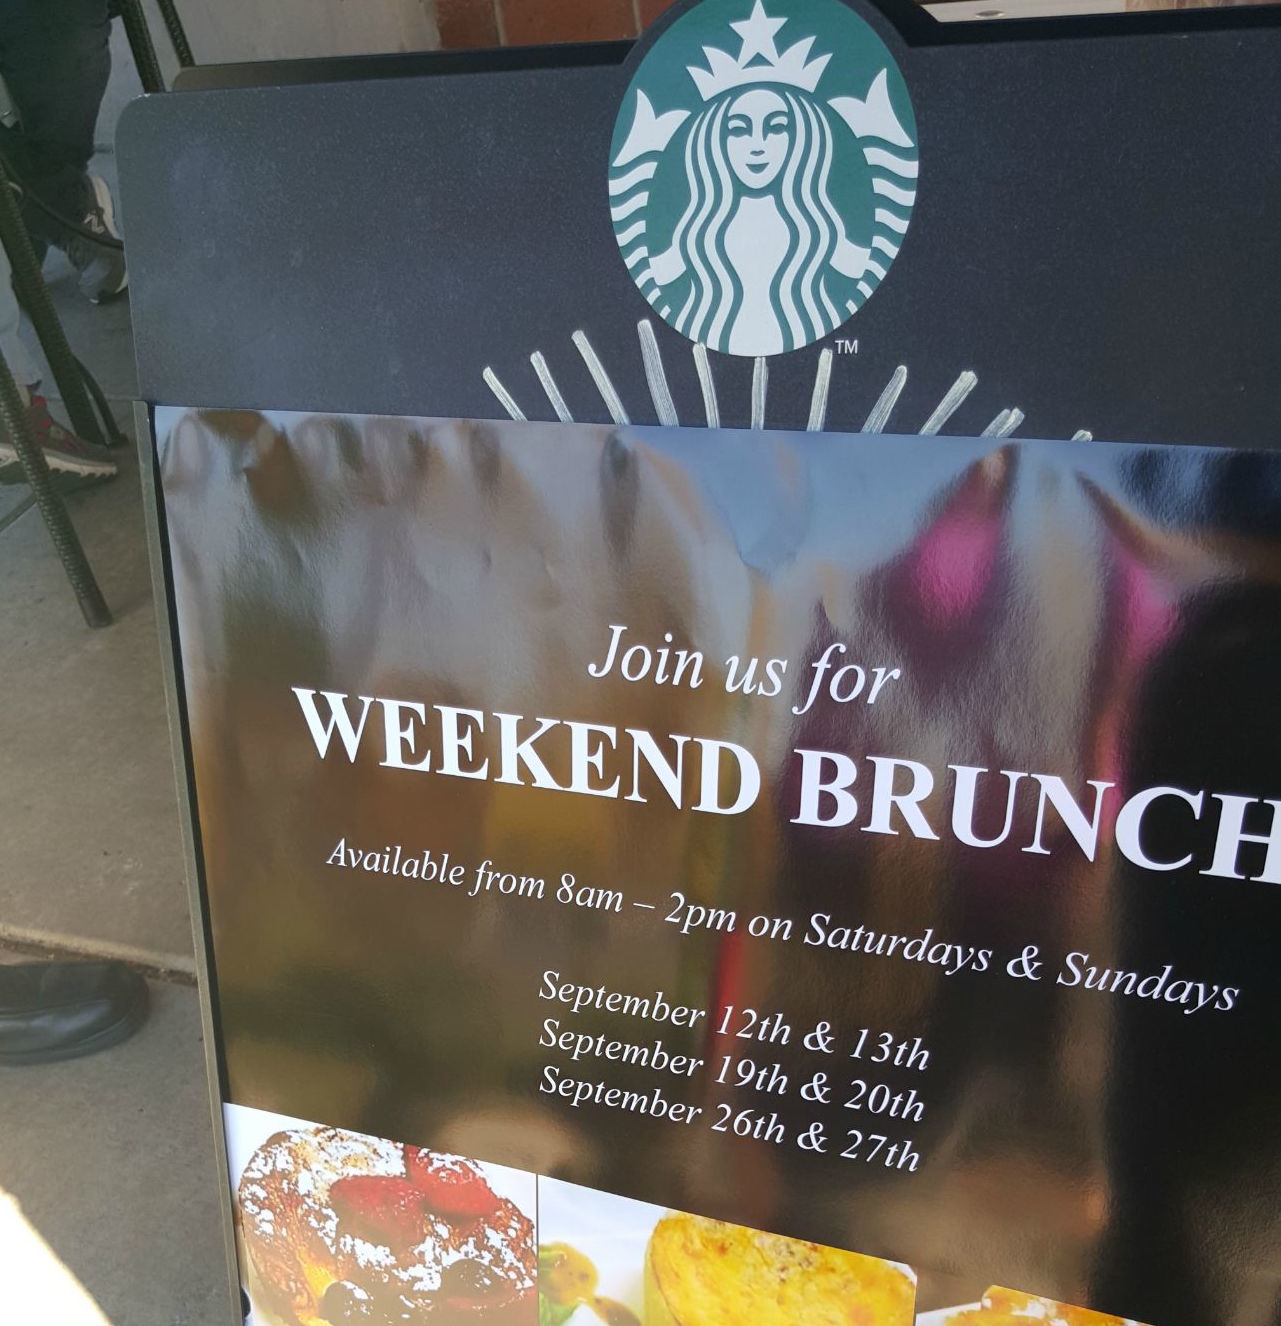 Starbucks Brunch